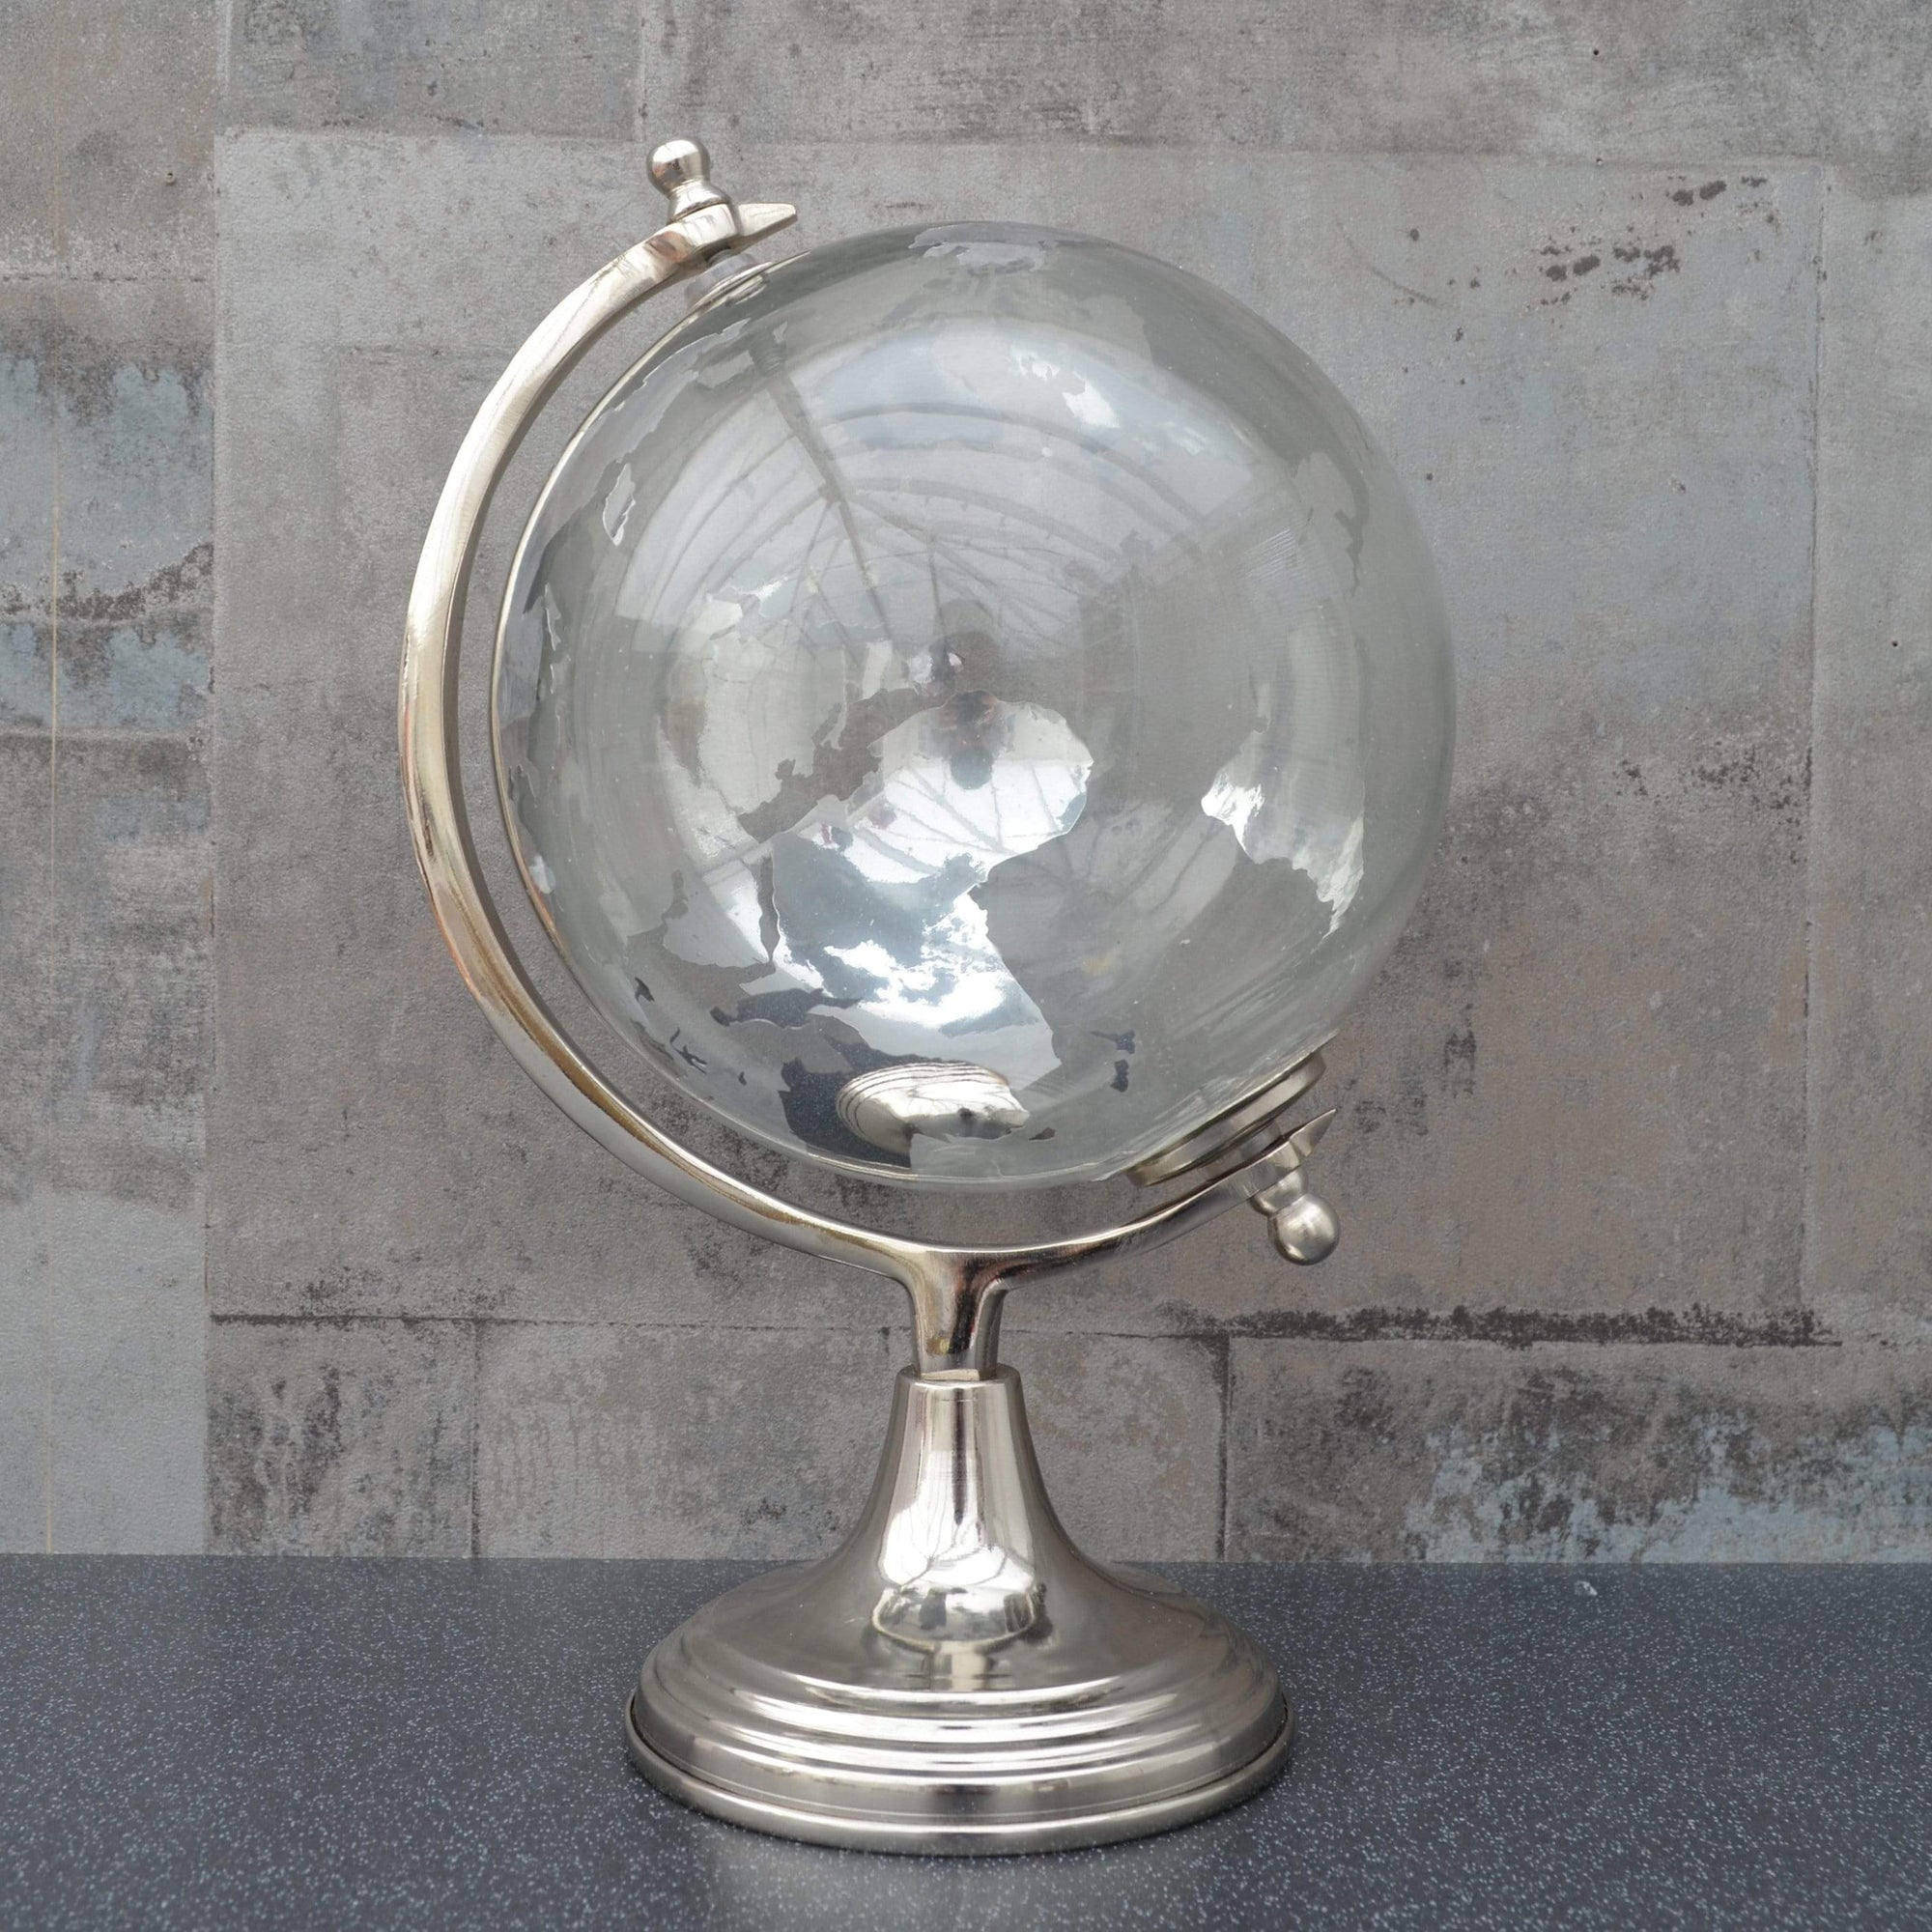 Candlelight Home Globes Large Glass Globe on Metal Stand Silver 32.5cm 1PK